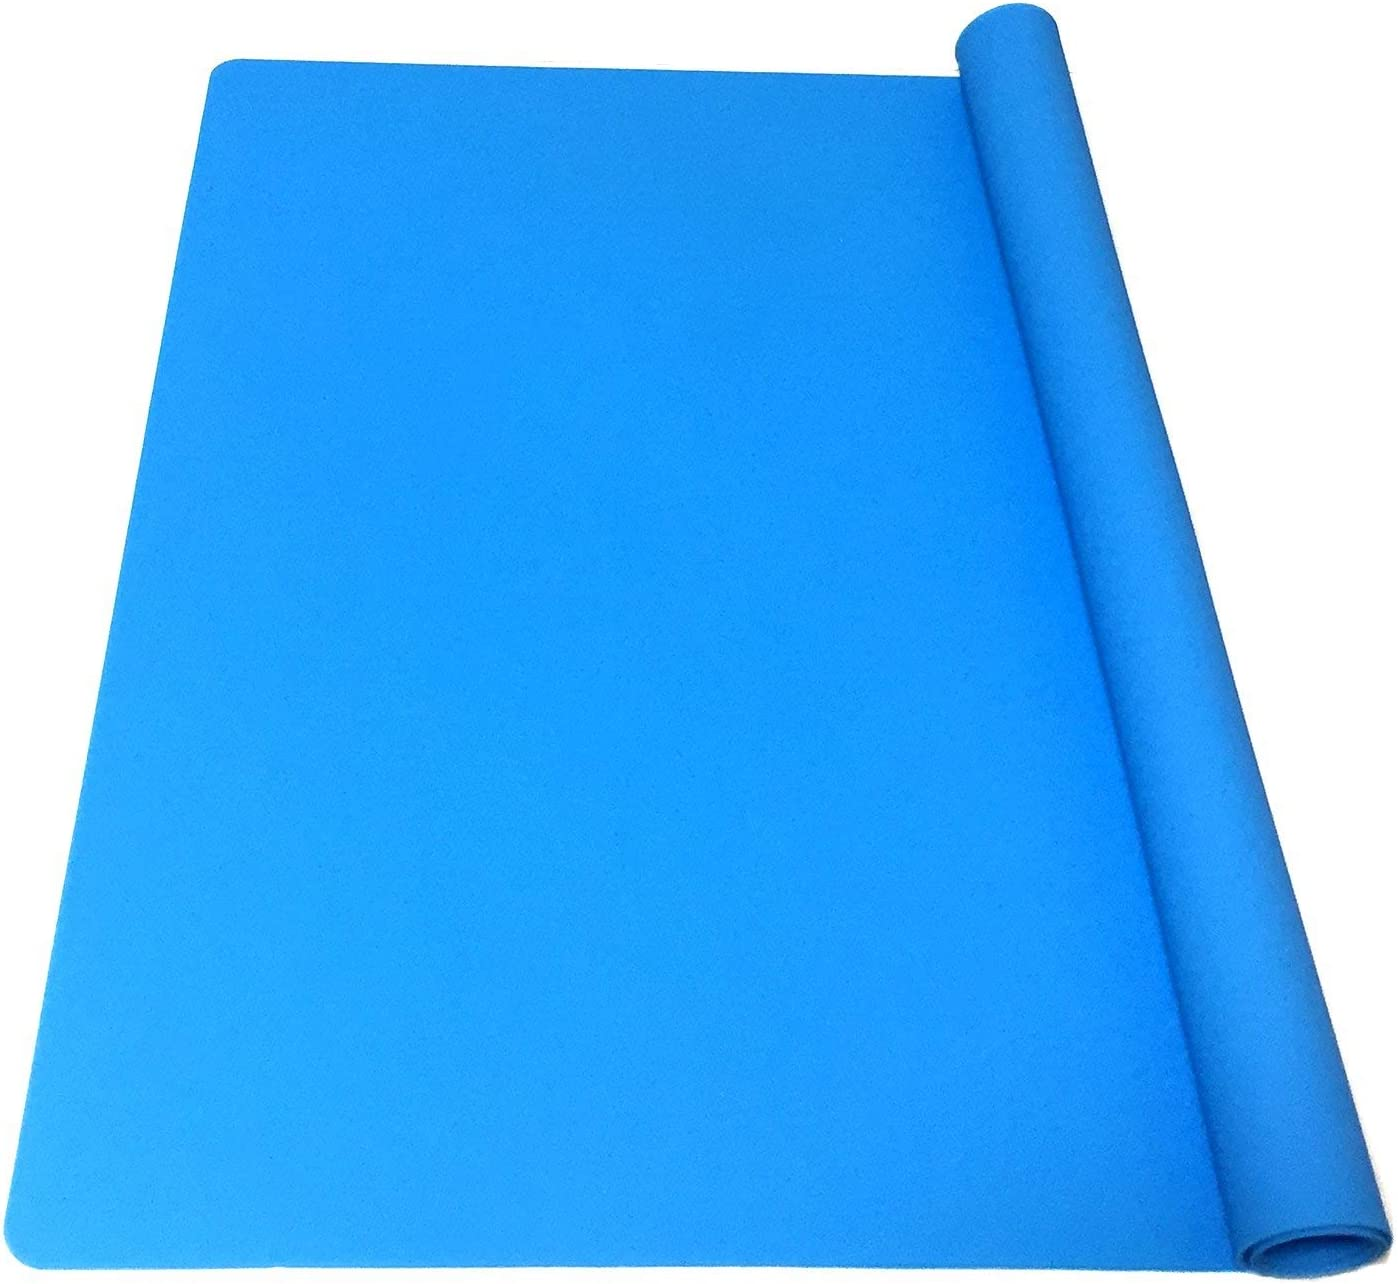 Top 10 Best Silicone Placemats (2020 Reviews & Buying Guide) 2